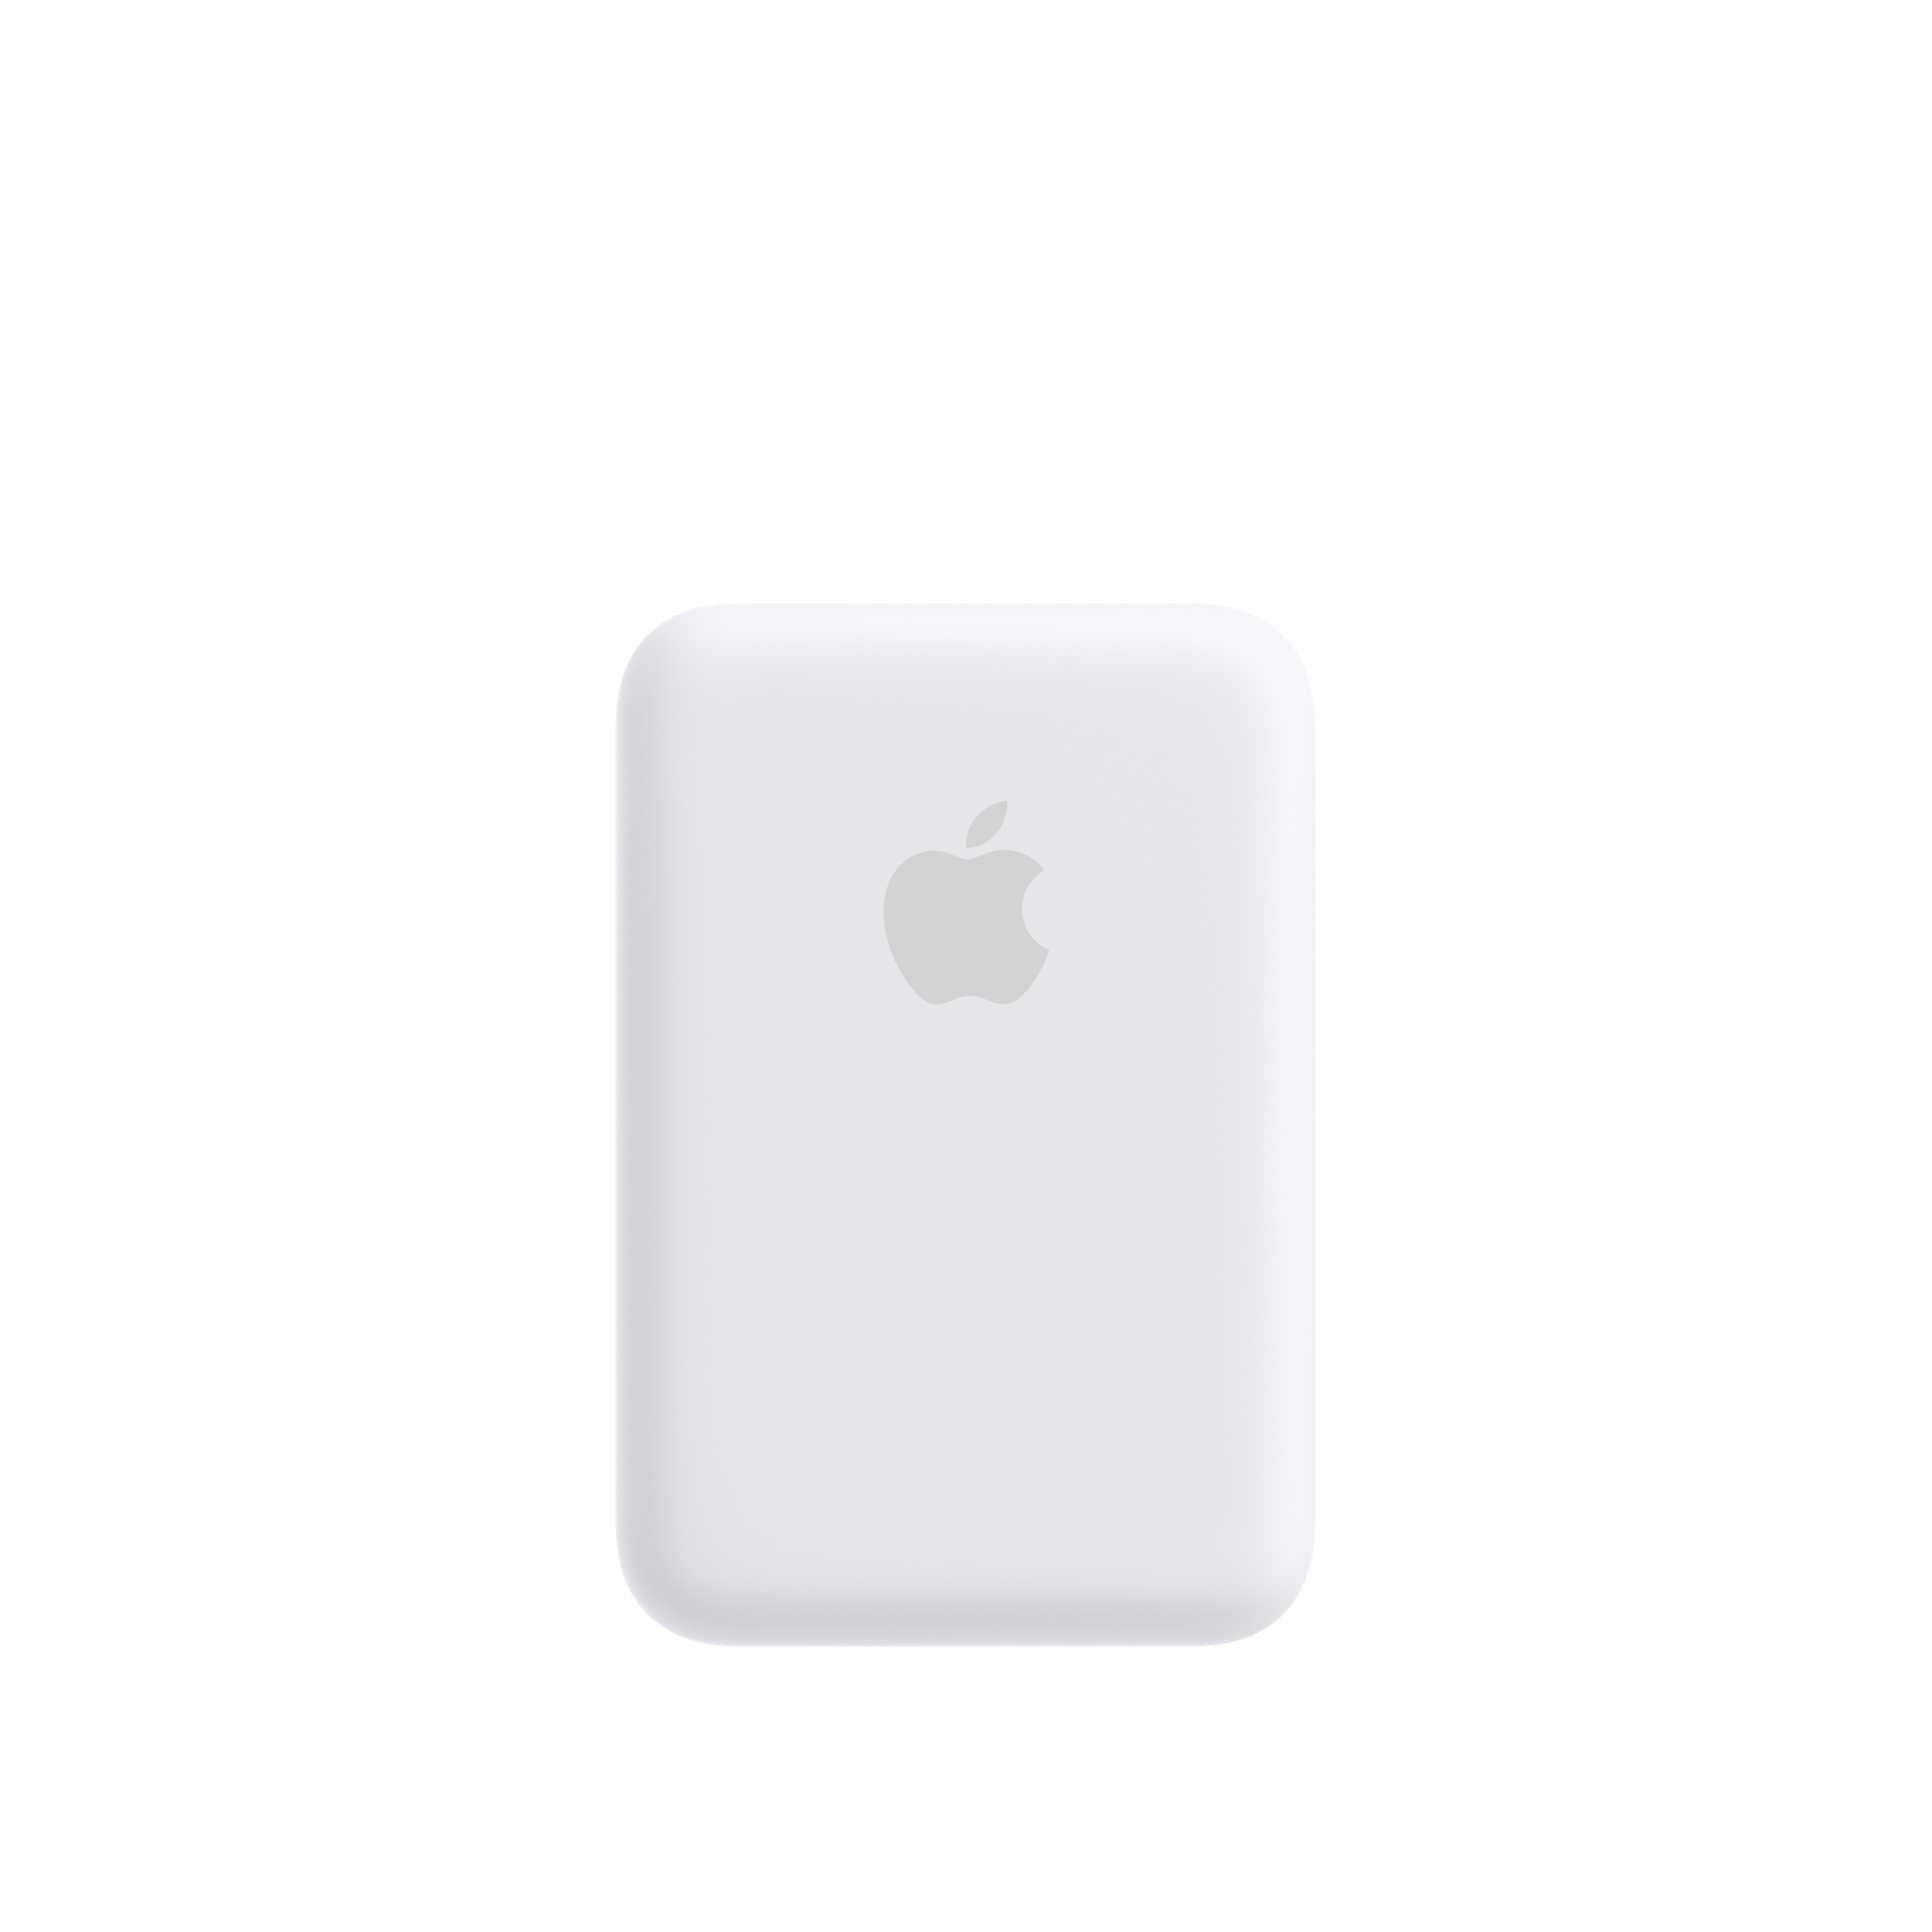 Apple MagSafe Battery Pack, White